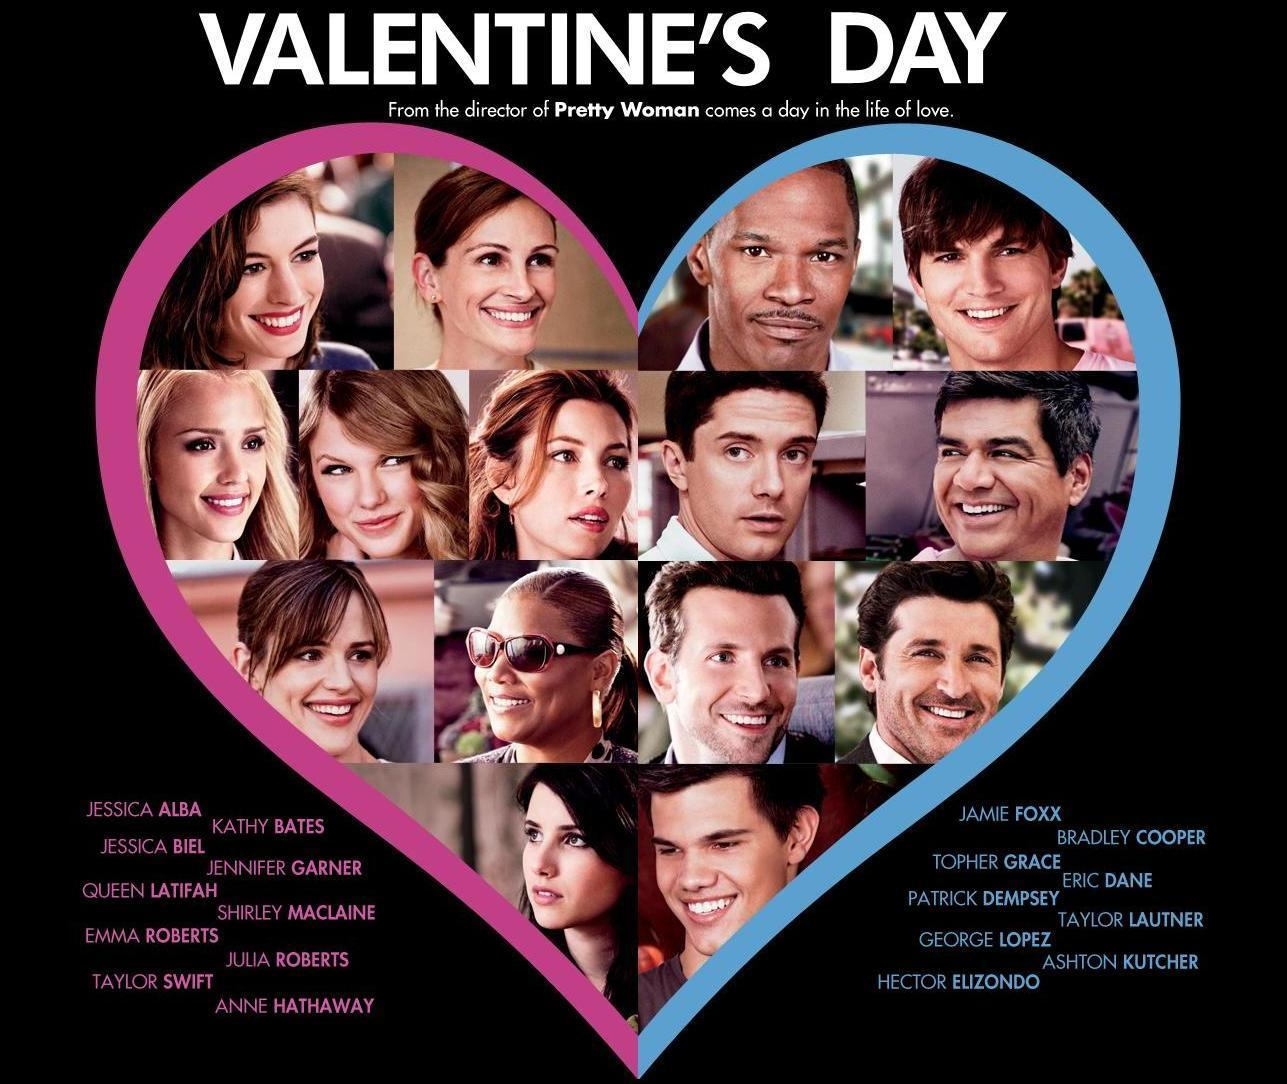 Valentines Day Movie - a collage of all the actor's faces inside a heart.